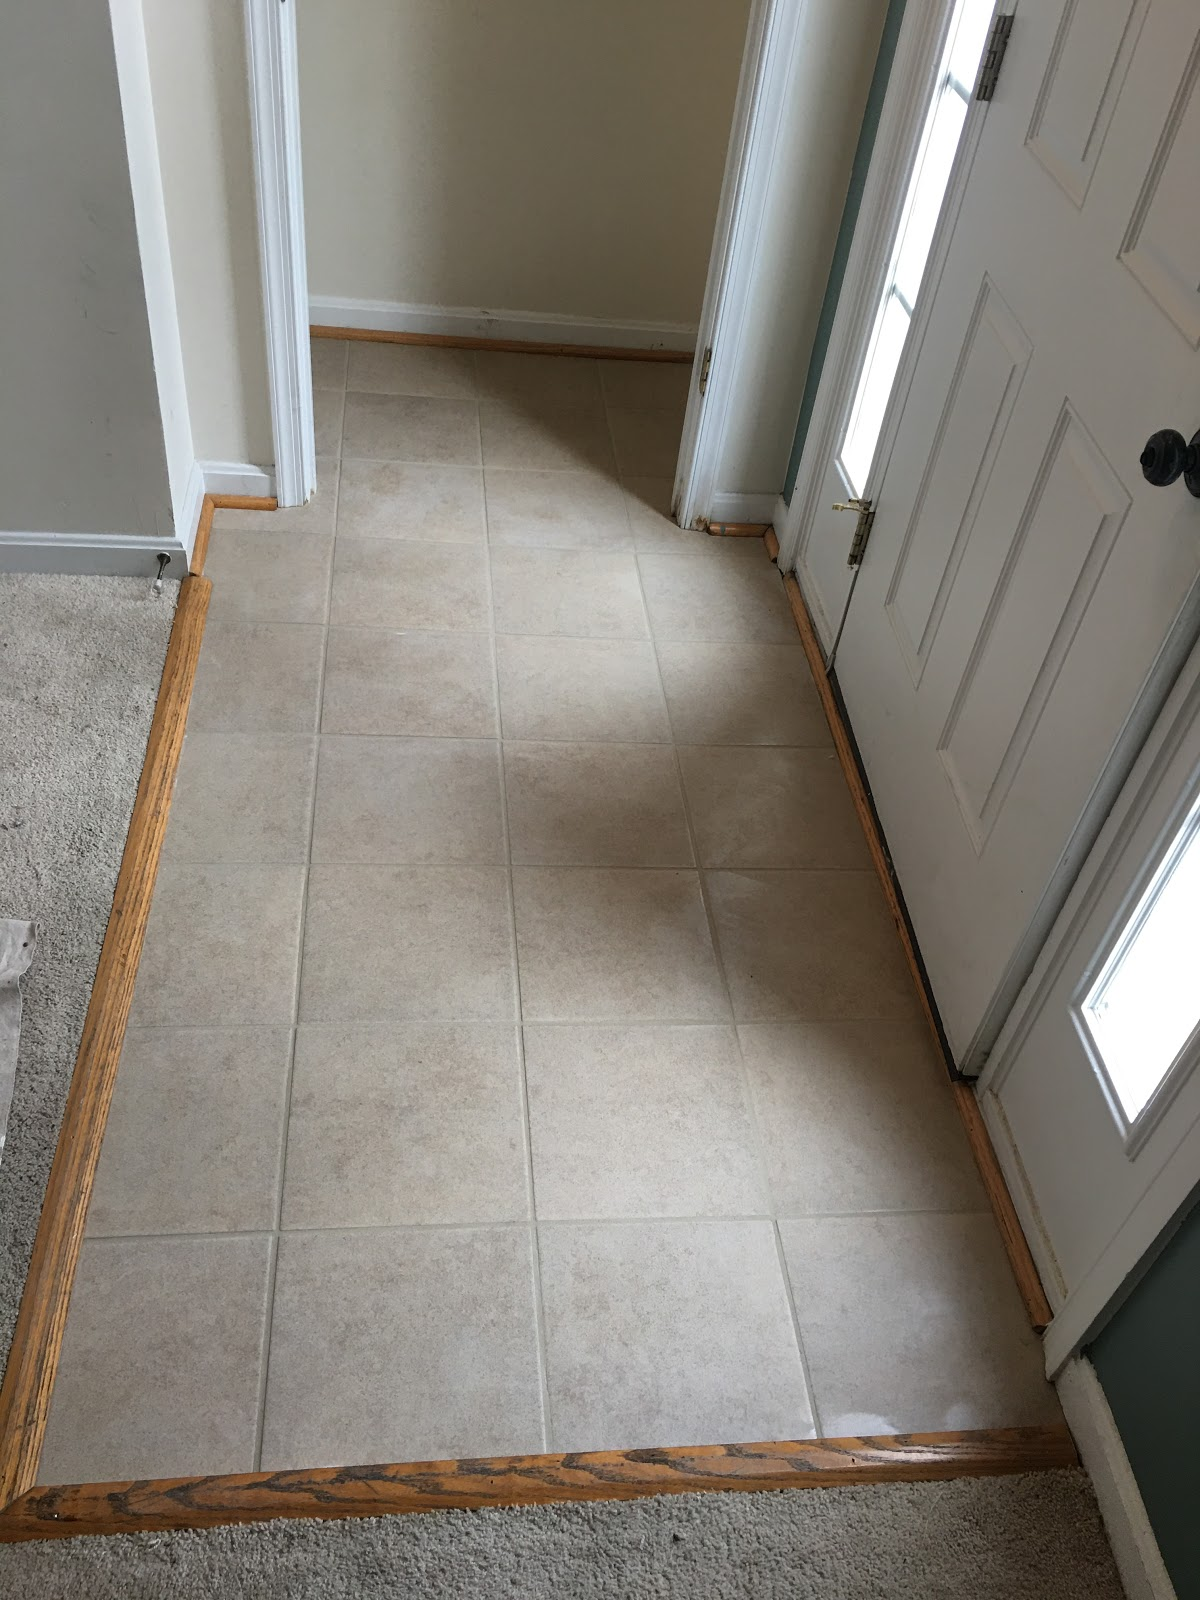 Tile Flooring | Handyman Specialist in Fulton, MD